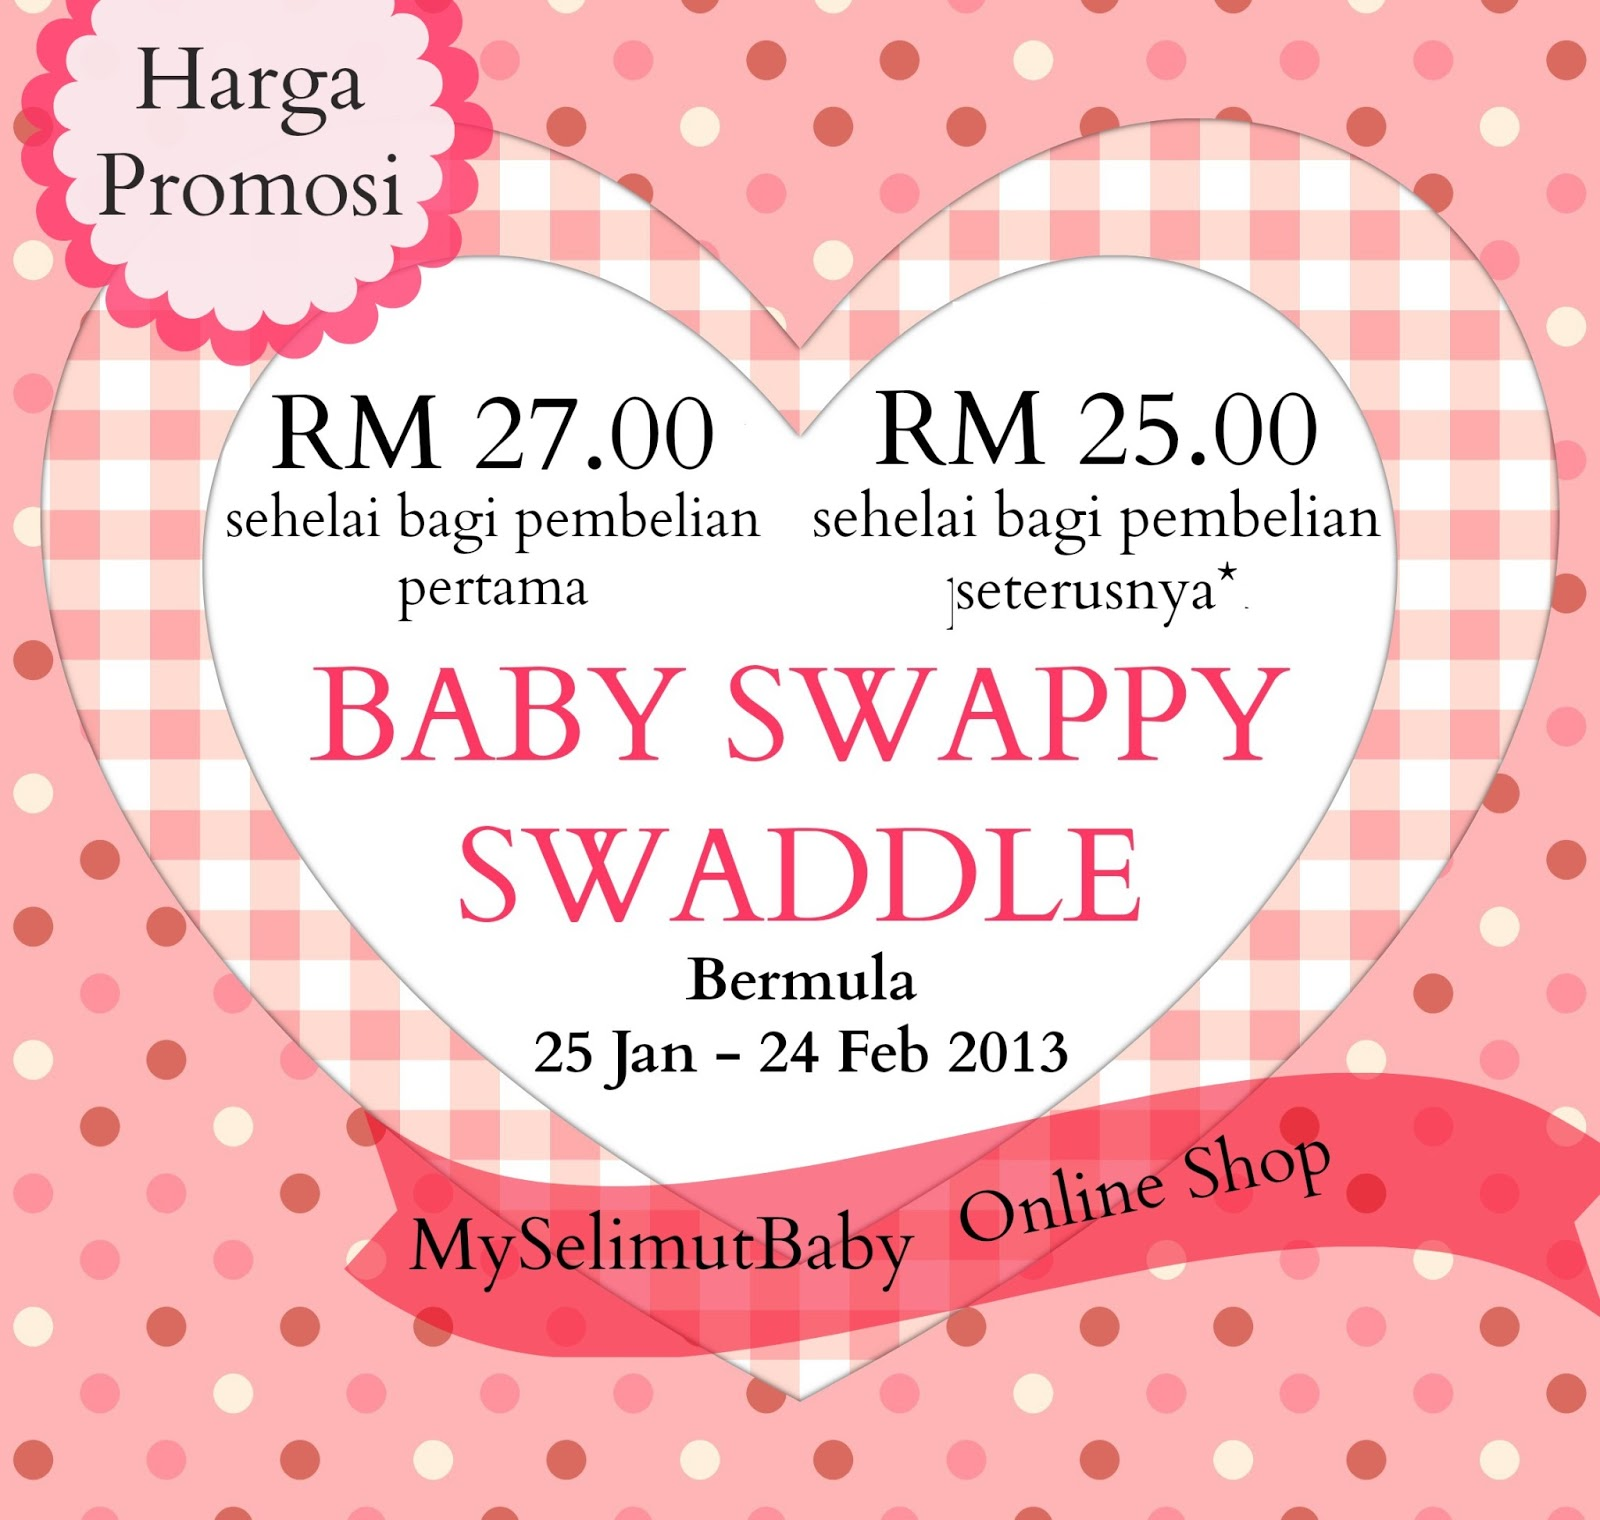 diskaun baby swappy swaddle myselimutbaby online shop. Black Bedroom Furniture Sets. Home Design Ideas